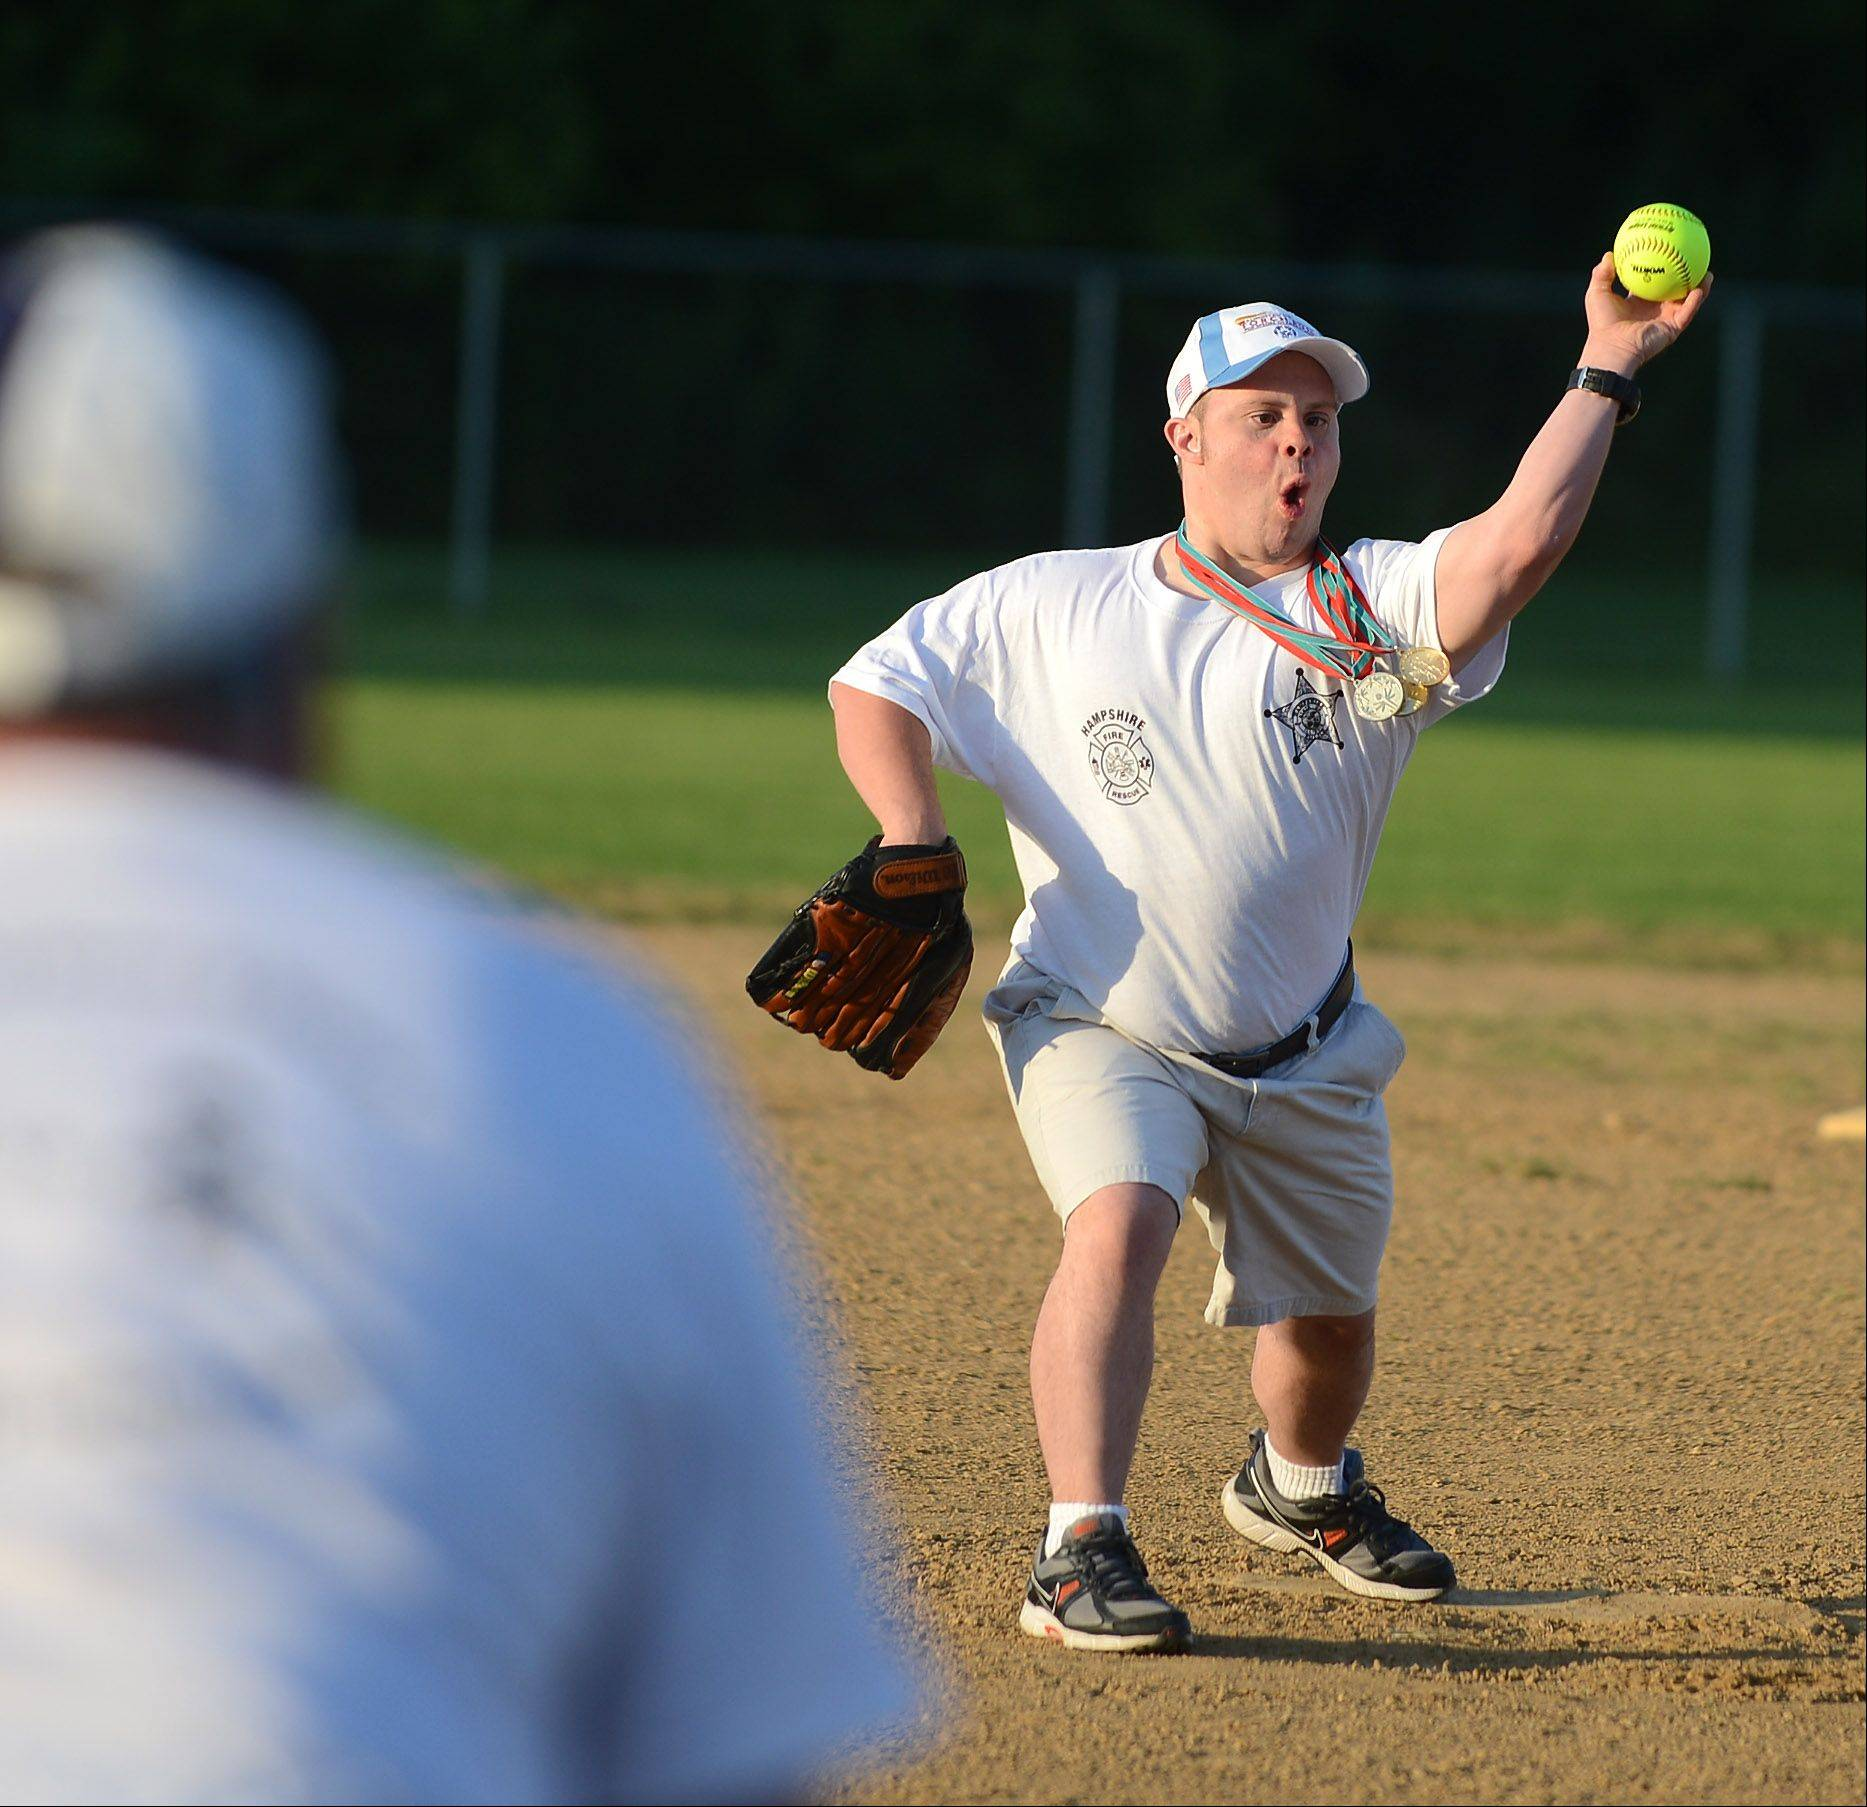 Special Olympian Dustin Dickens of Sugar Grove throws out the ceremonial first pitch before the annual Guns and Hoses charity softball game at Hampshire's Coon Creek Country Days festival Thursday. The game raises money for Illinois Special Olympics.